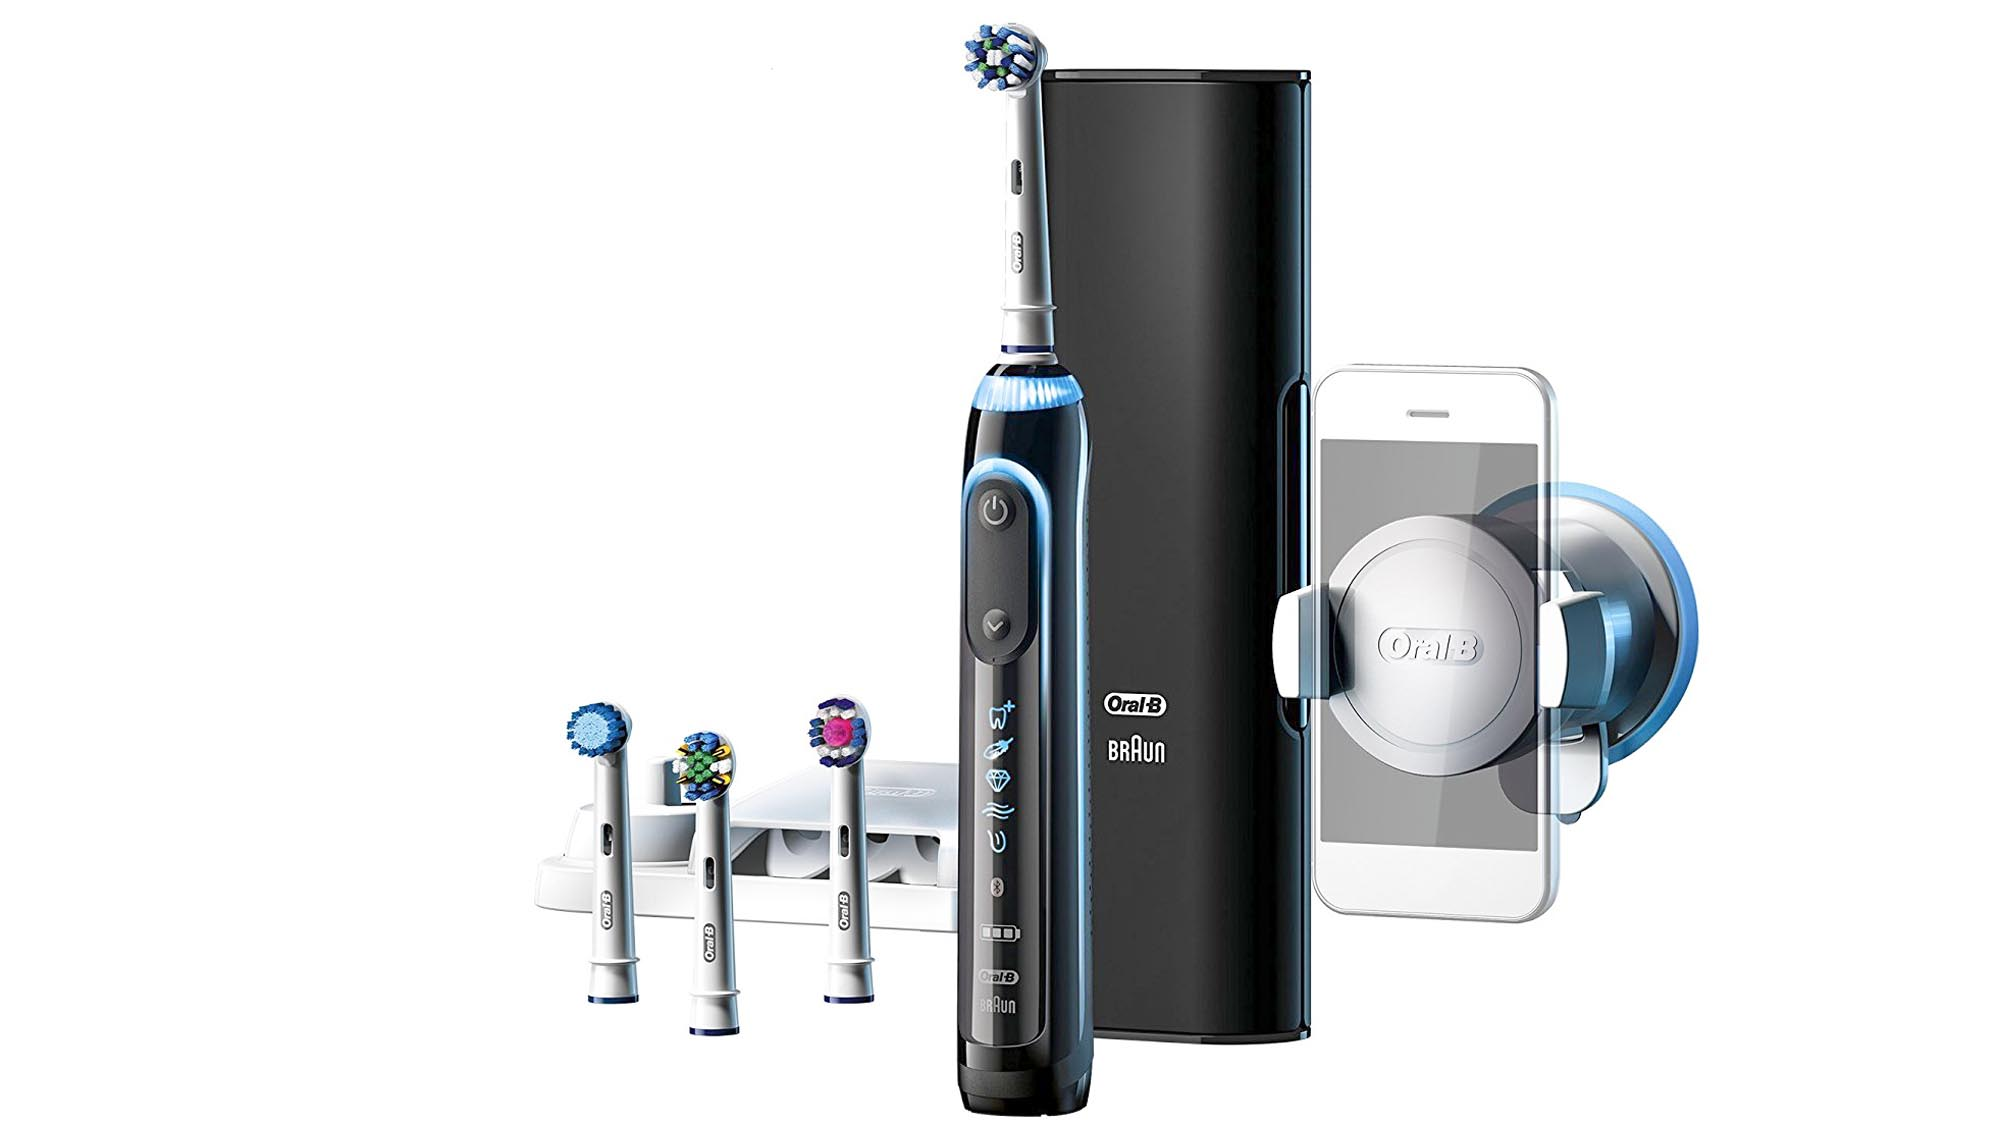 Brushing new toothbrush claims to clean teeth in 6 seconds abc news - Best Electric Toothbrush The Best Electric Toothbrushes From 30 Expert Reviews